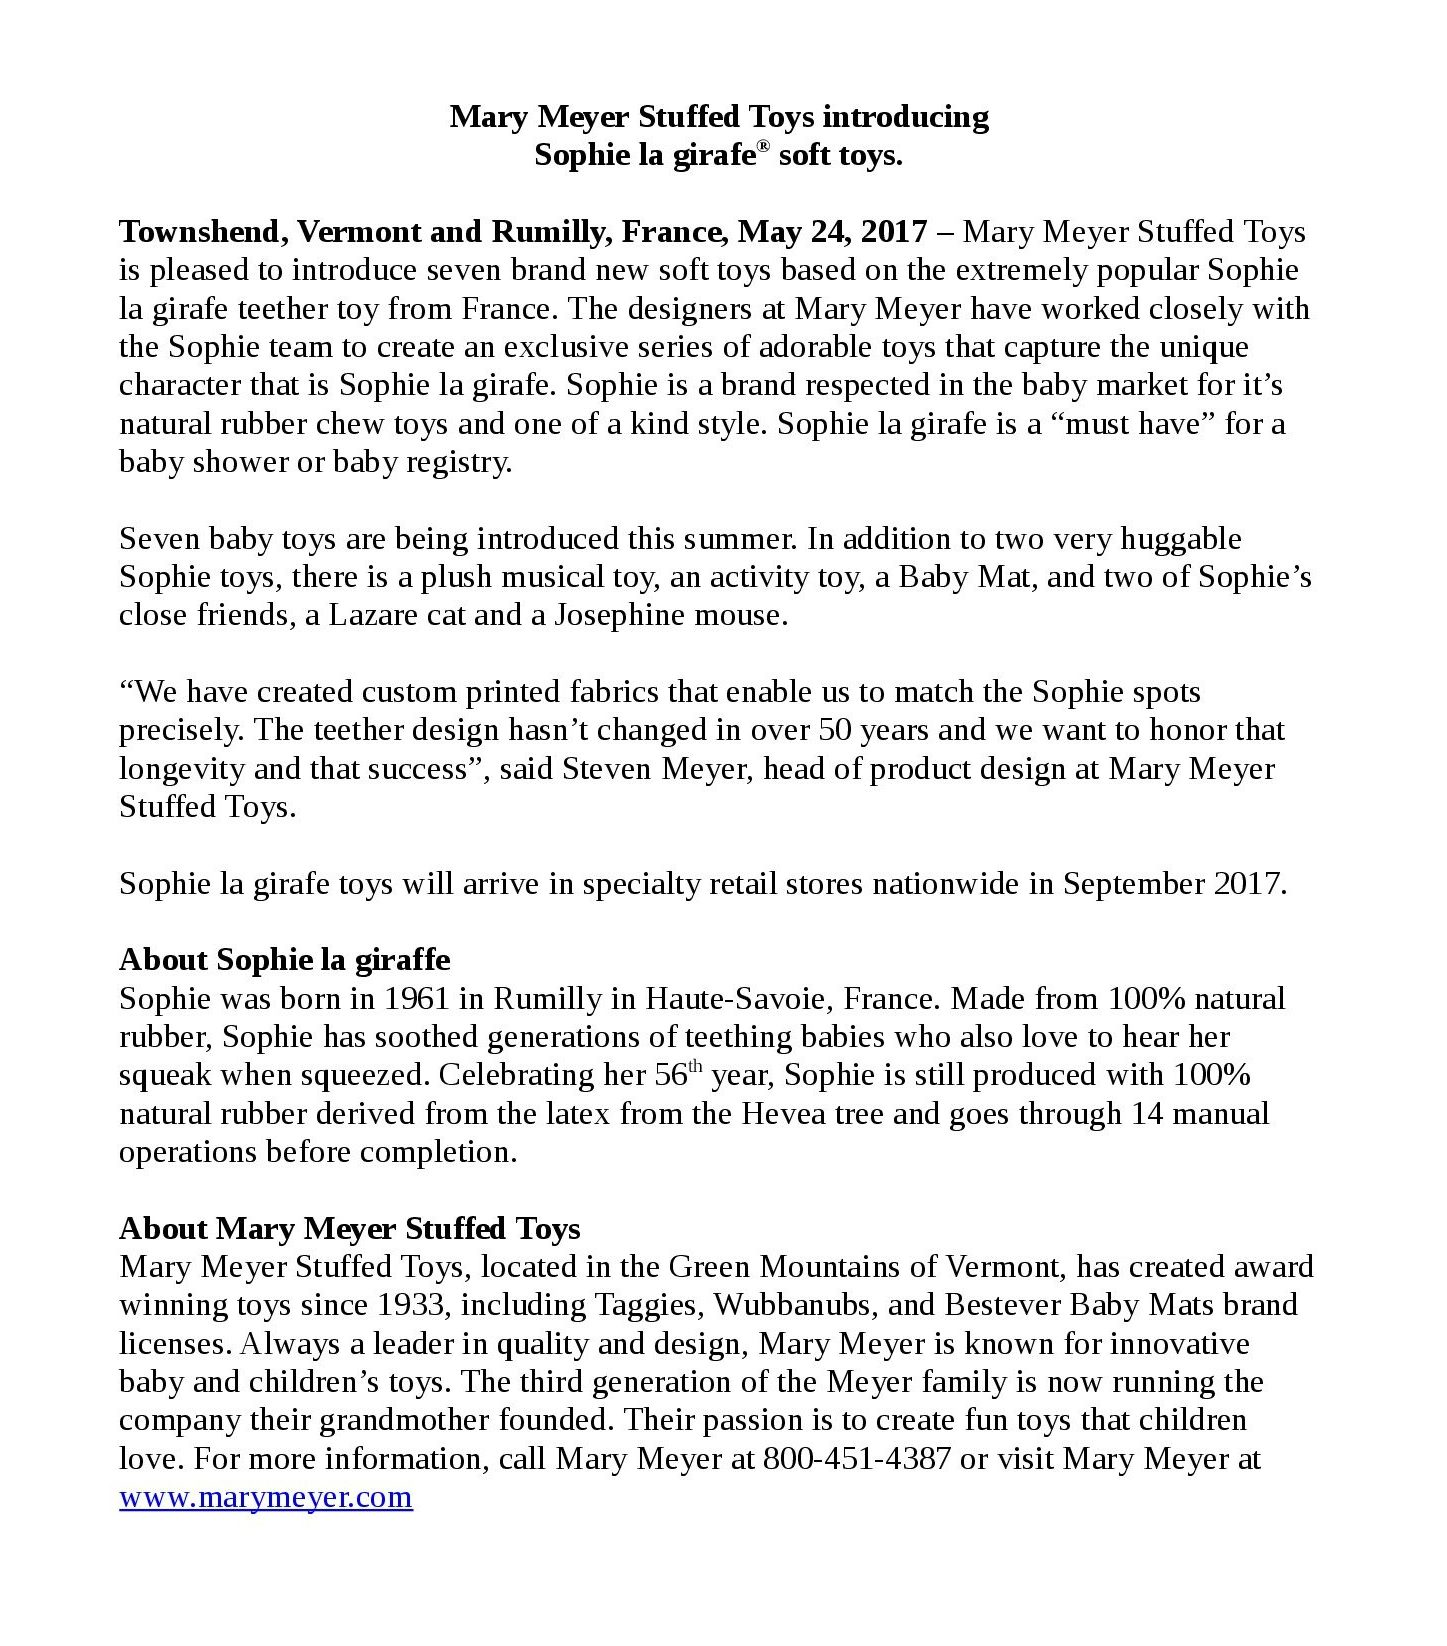 Mary Meyer & Sophie la girafe Press Release - May 2017